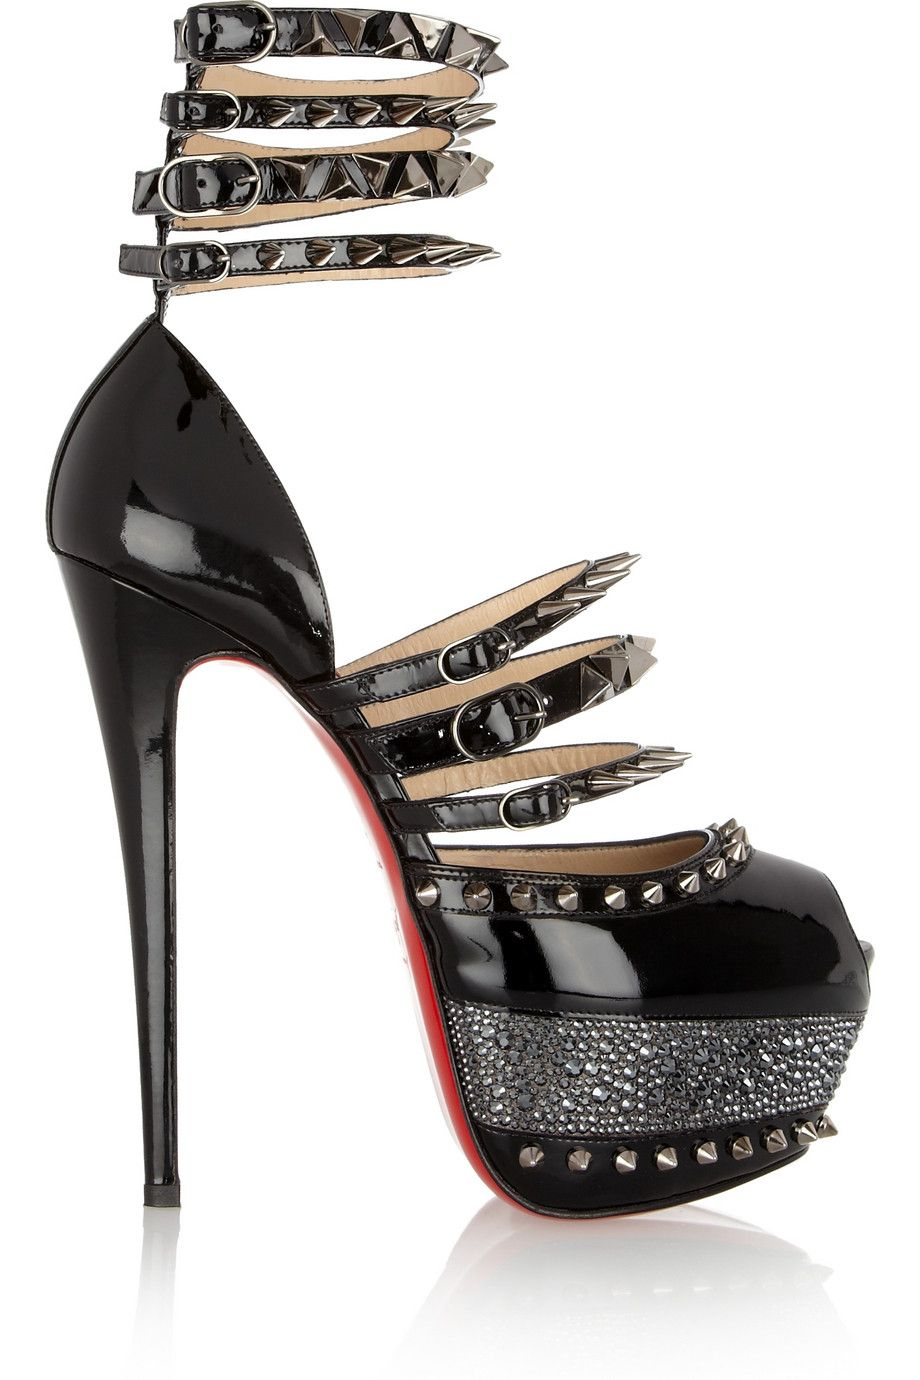 Christian Louboutin | 20th Anniversary Isolde 160 patent-leather sandals | NET-A-PORTER.COM